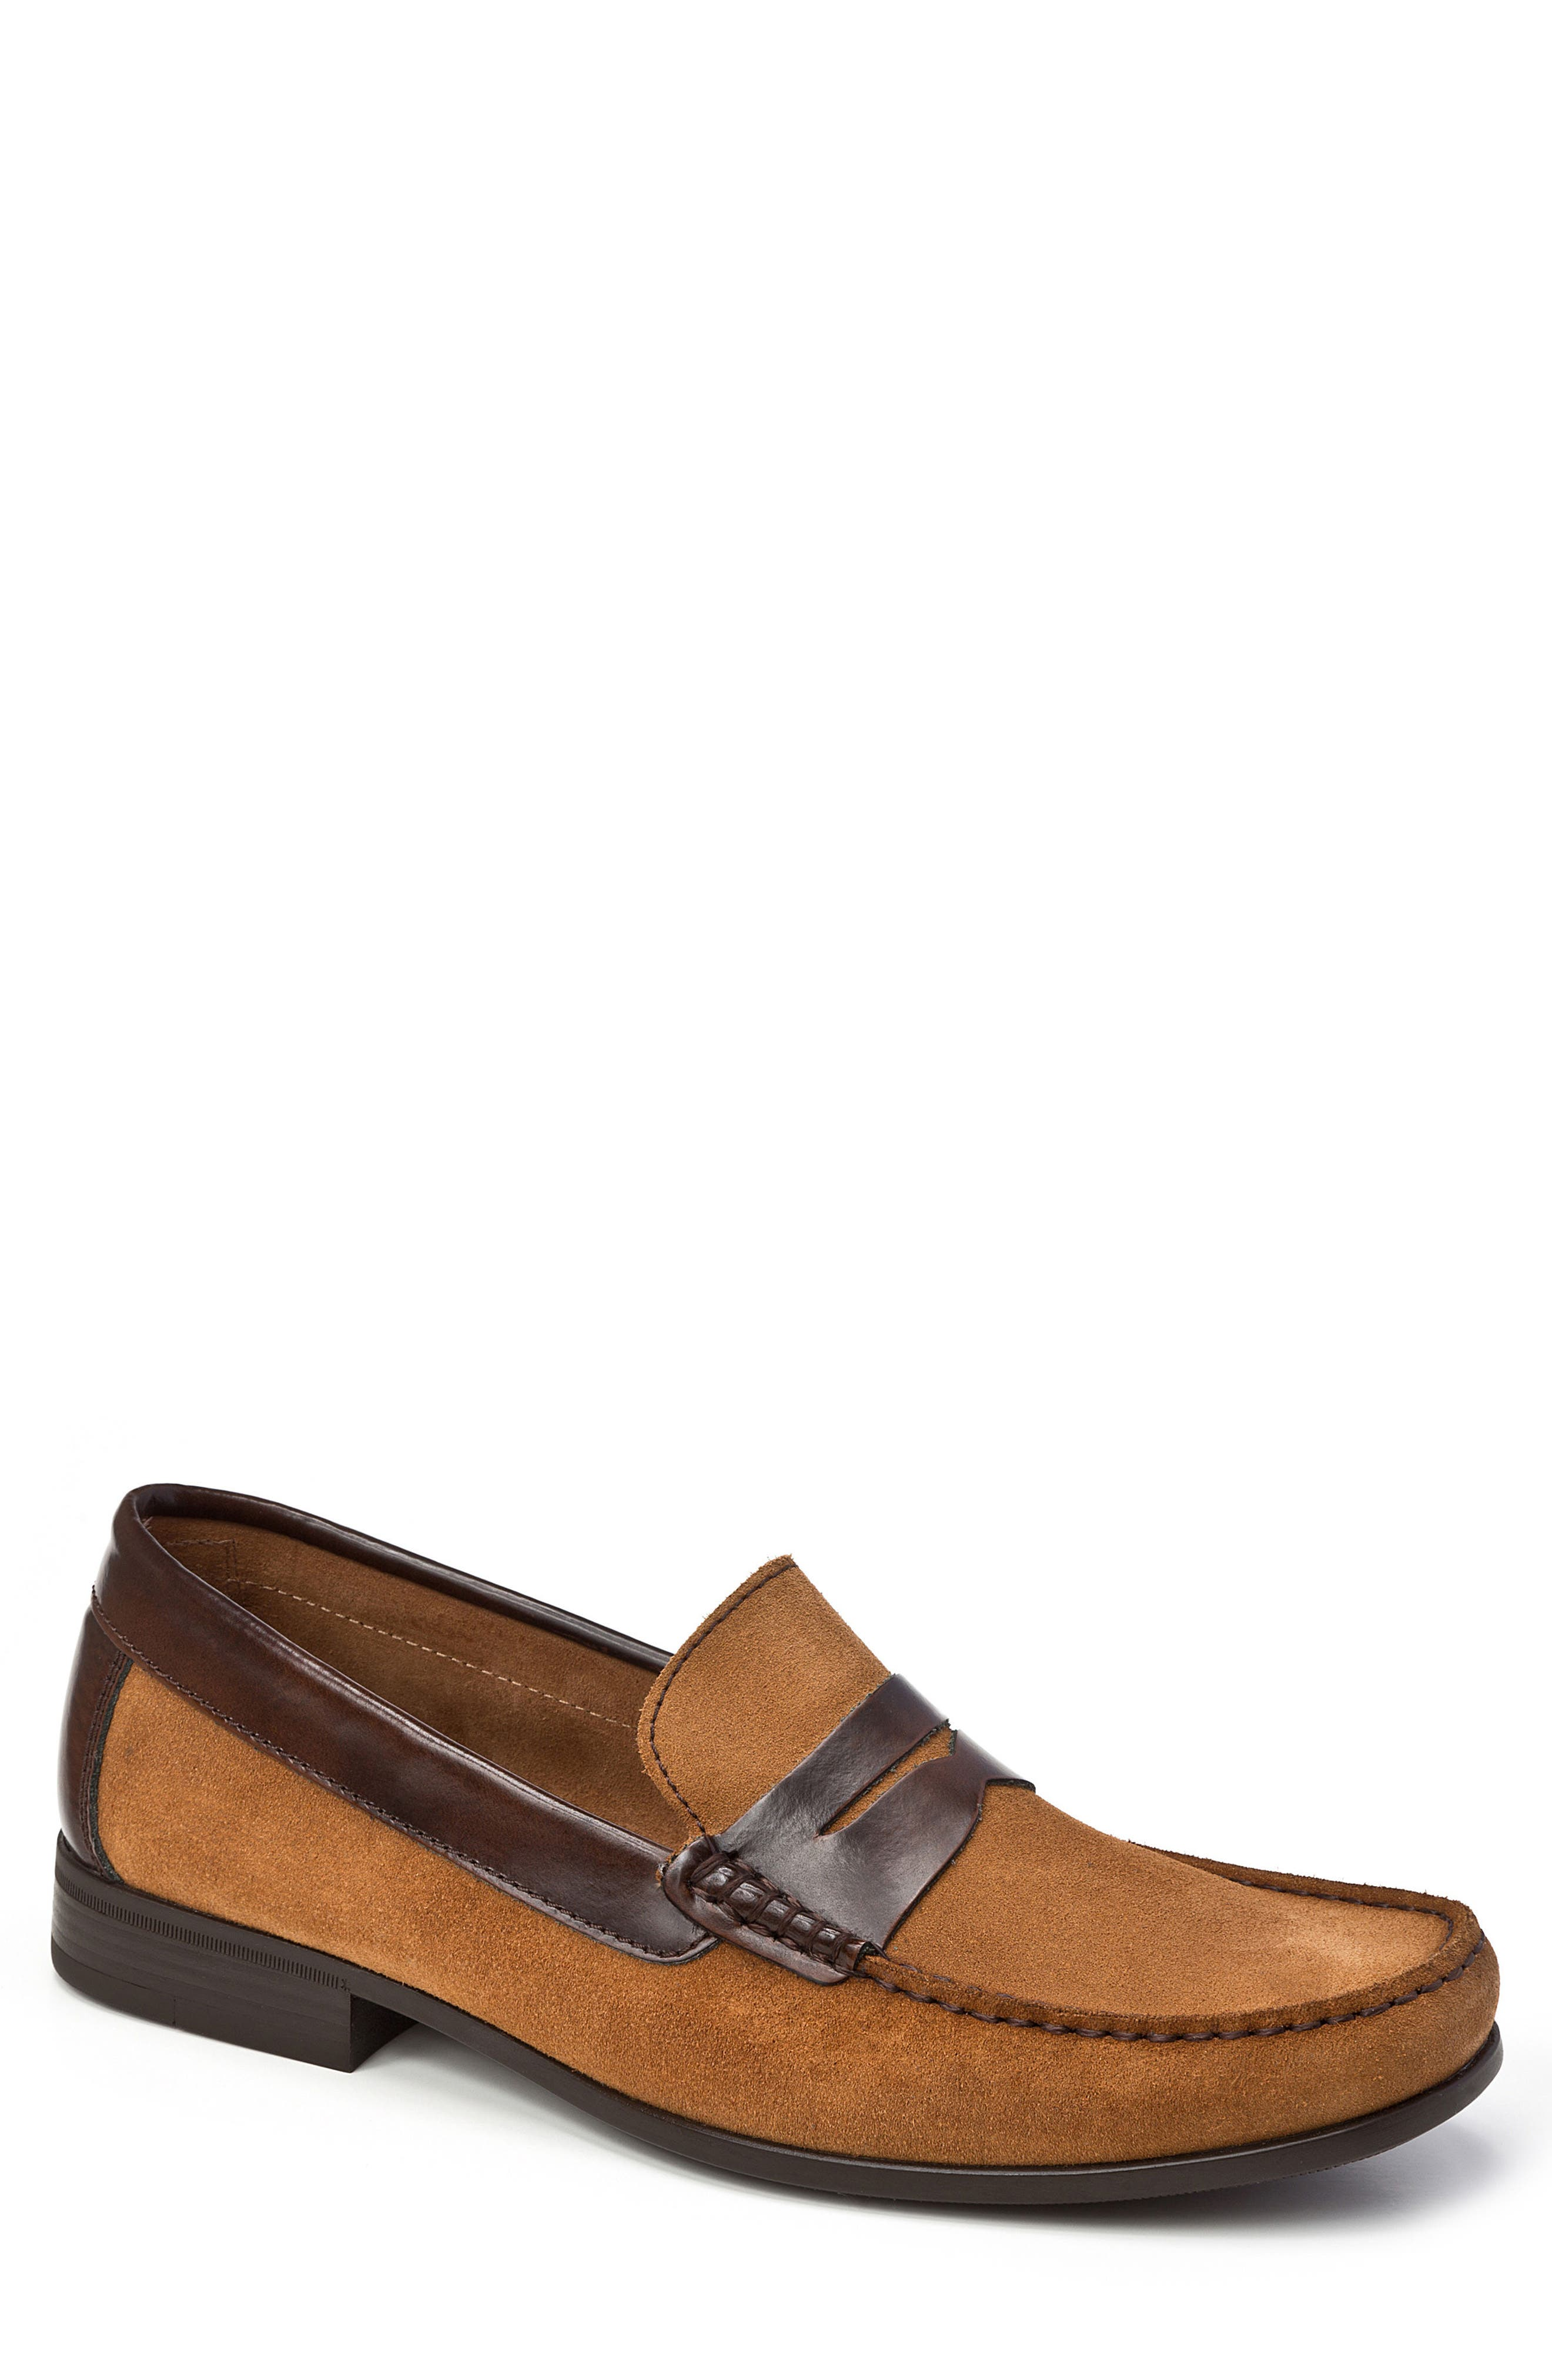 Lucho Penny Loafer,                             Main thumbnail 1, color,                             230